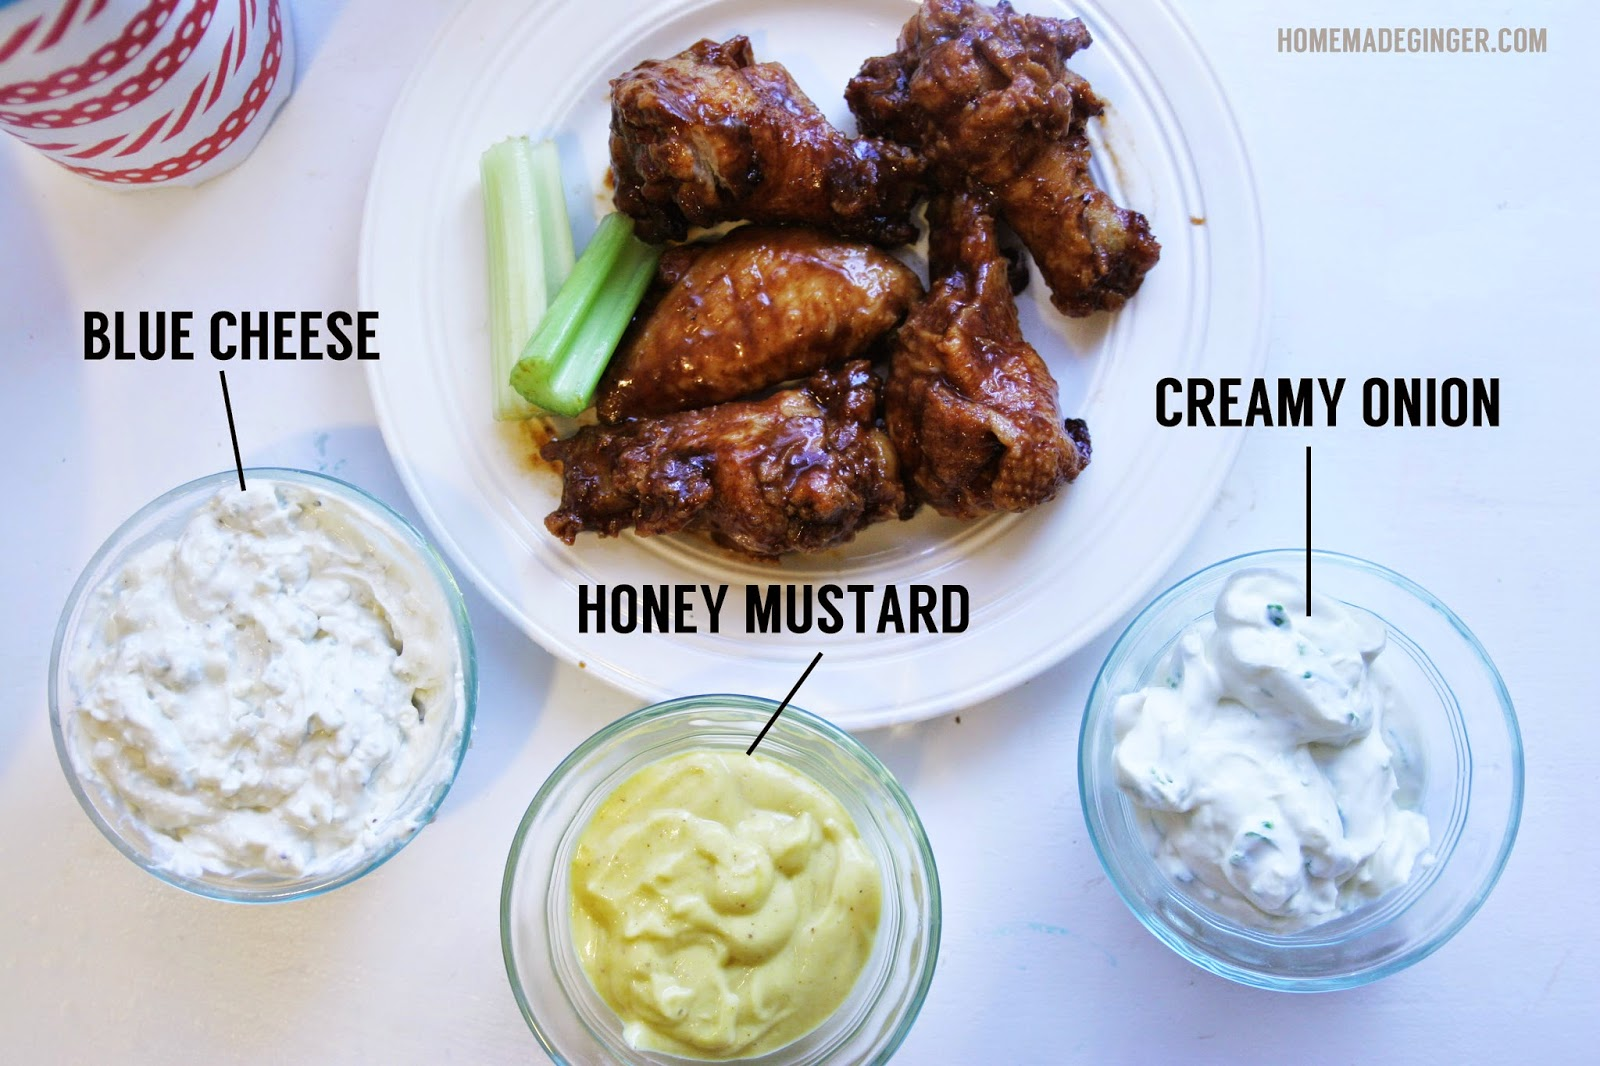 hot wings and dipping sauces